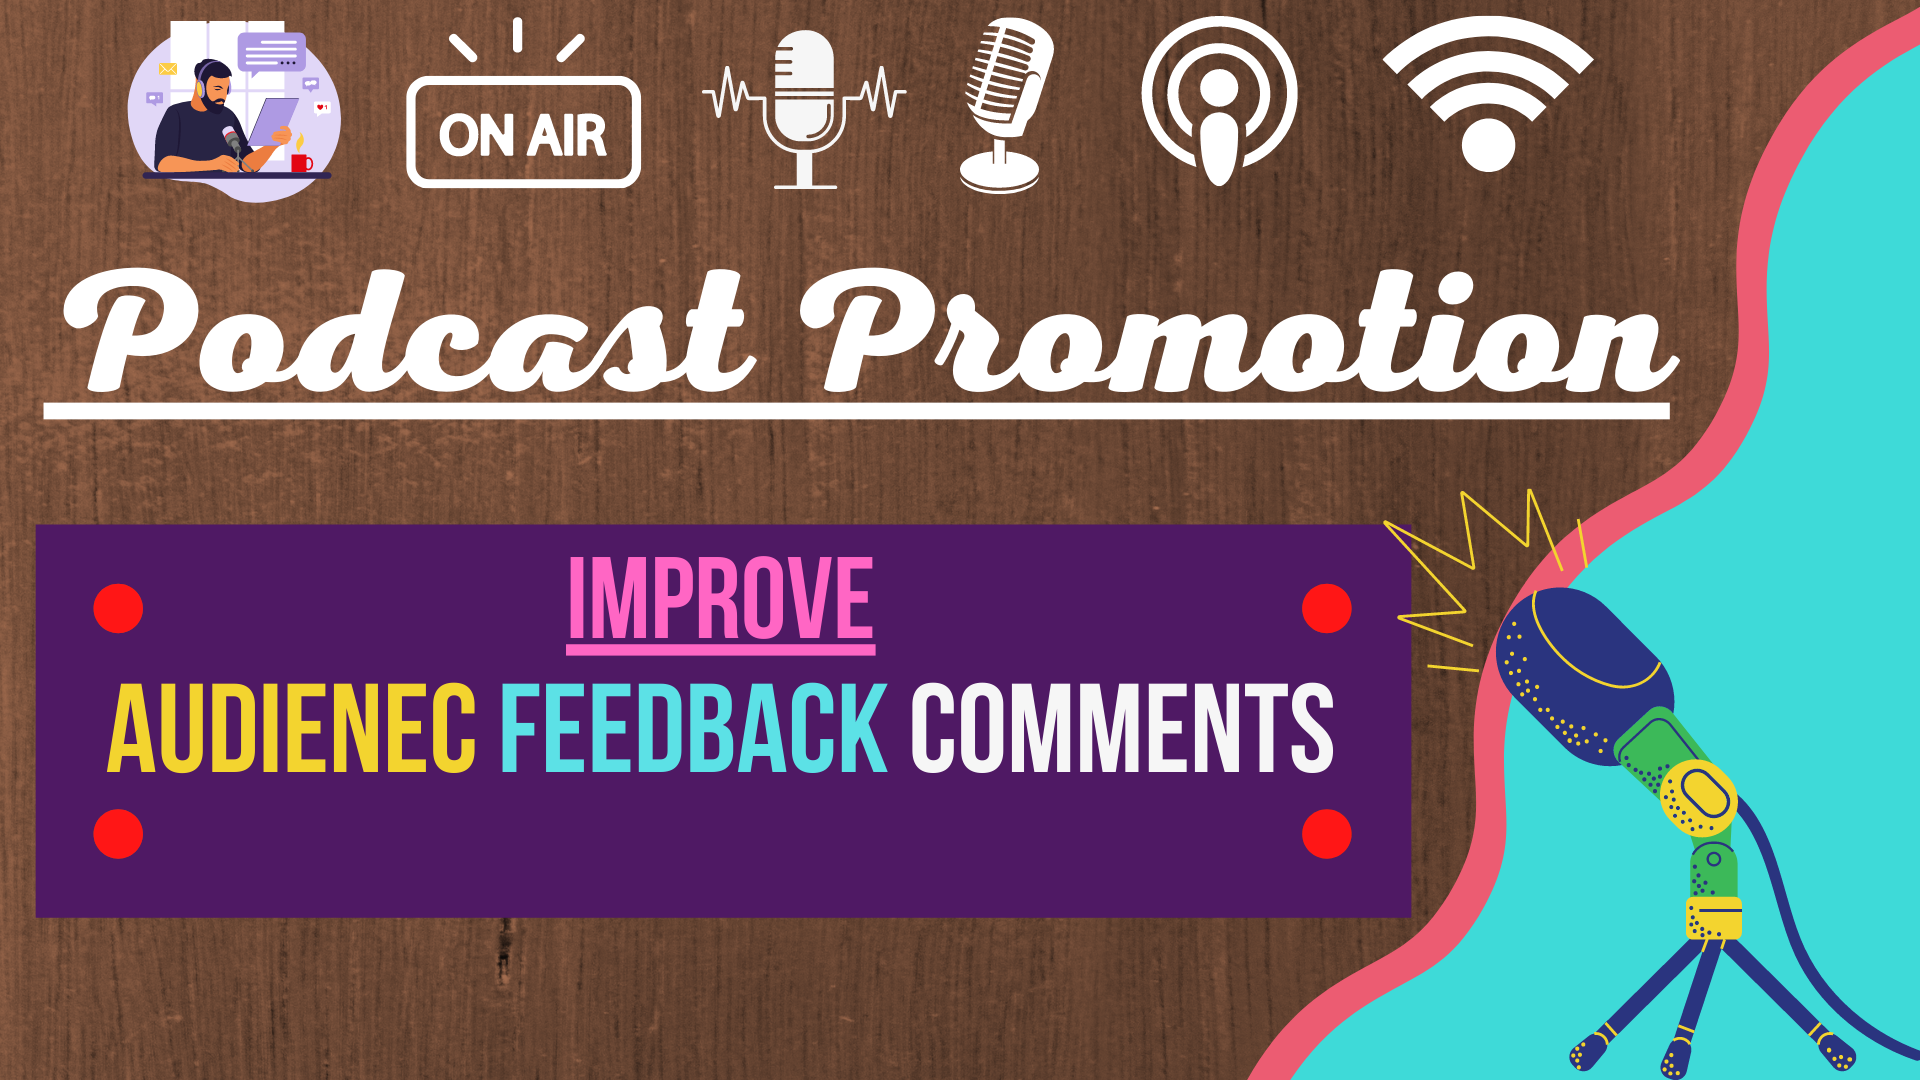 Natural Safe Podcast promotion with organic growth to your audience Feedback